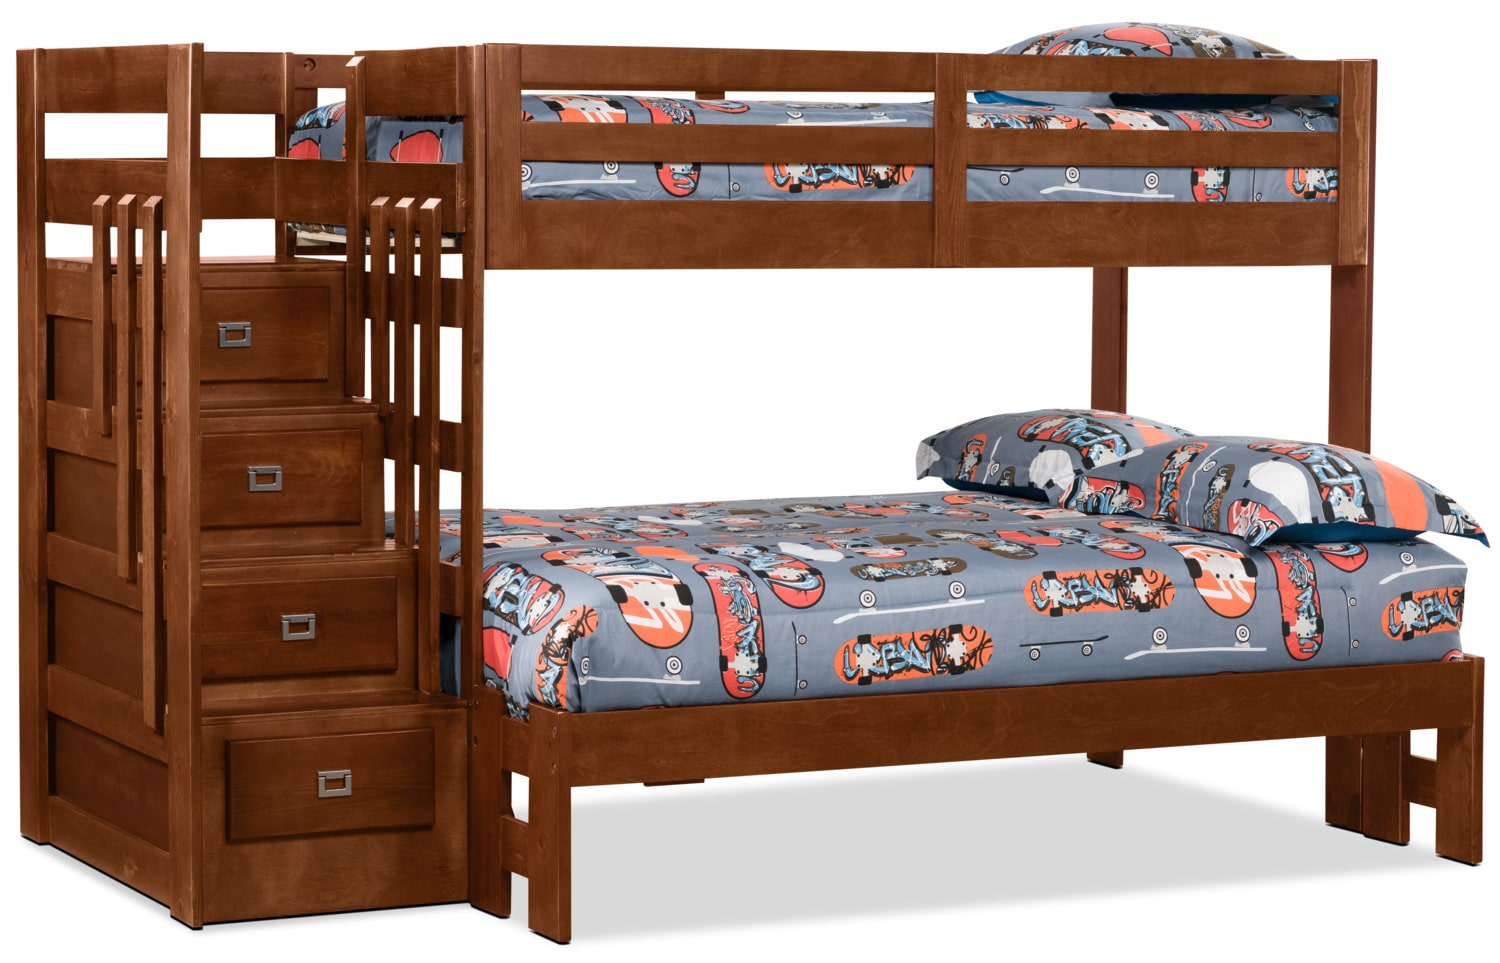 Kids Furniture - Berkeley Twin/Full Staircase Bunk Bed